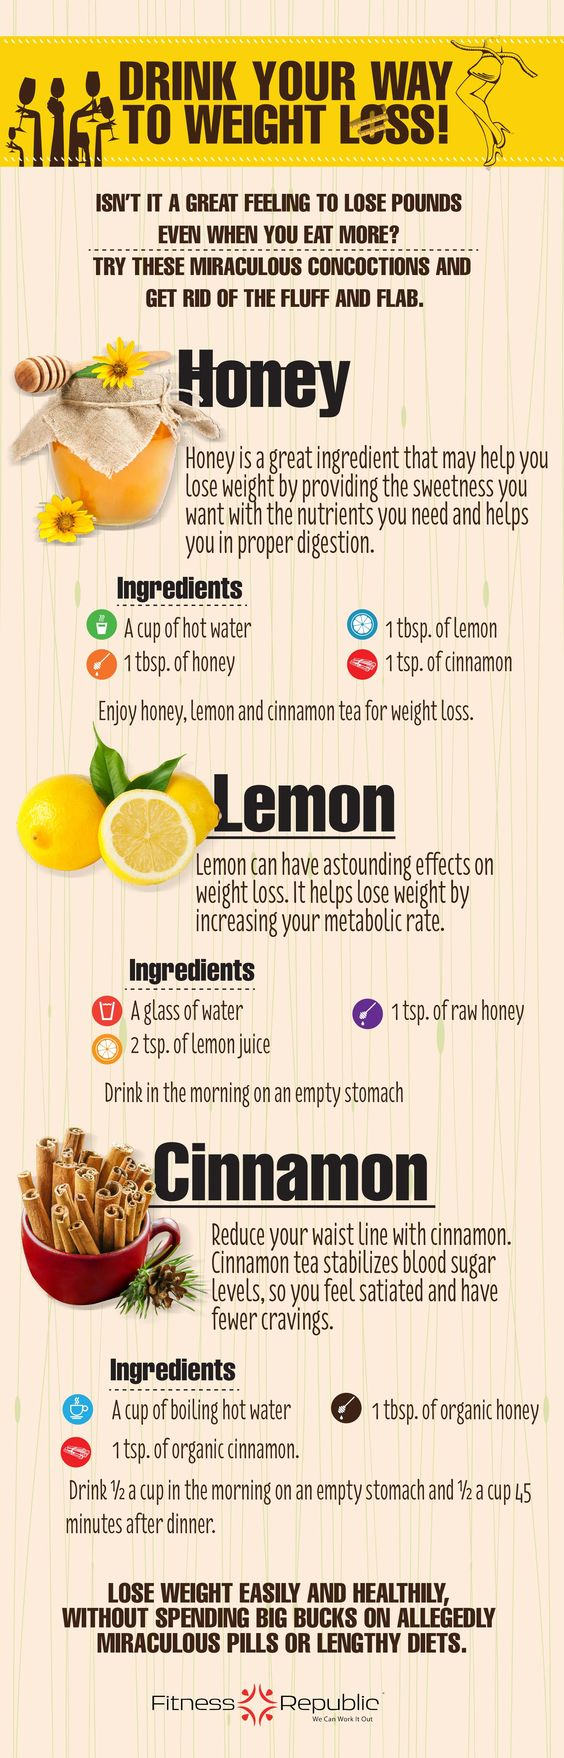 honey, lemon and cinnamon: